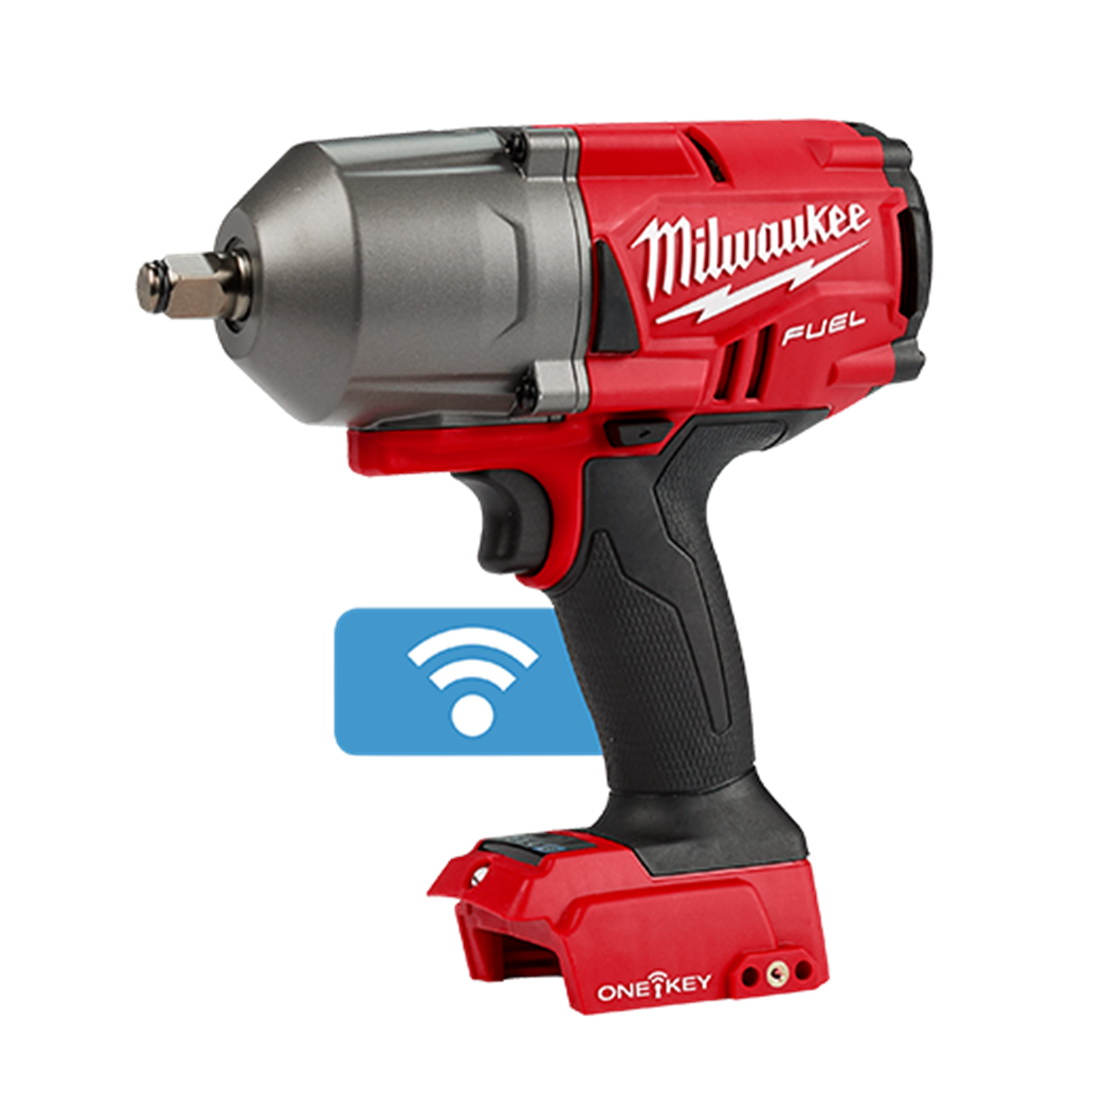 M18 FUEL ONE-KEY High Torque Impact Wrench Skin Only with Friction Ring 1/2inch 0-2100ipm M18ONEFHIWF12-0